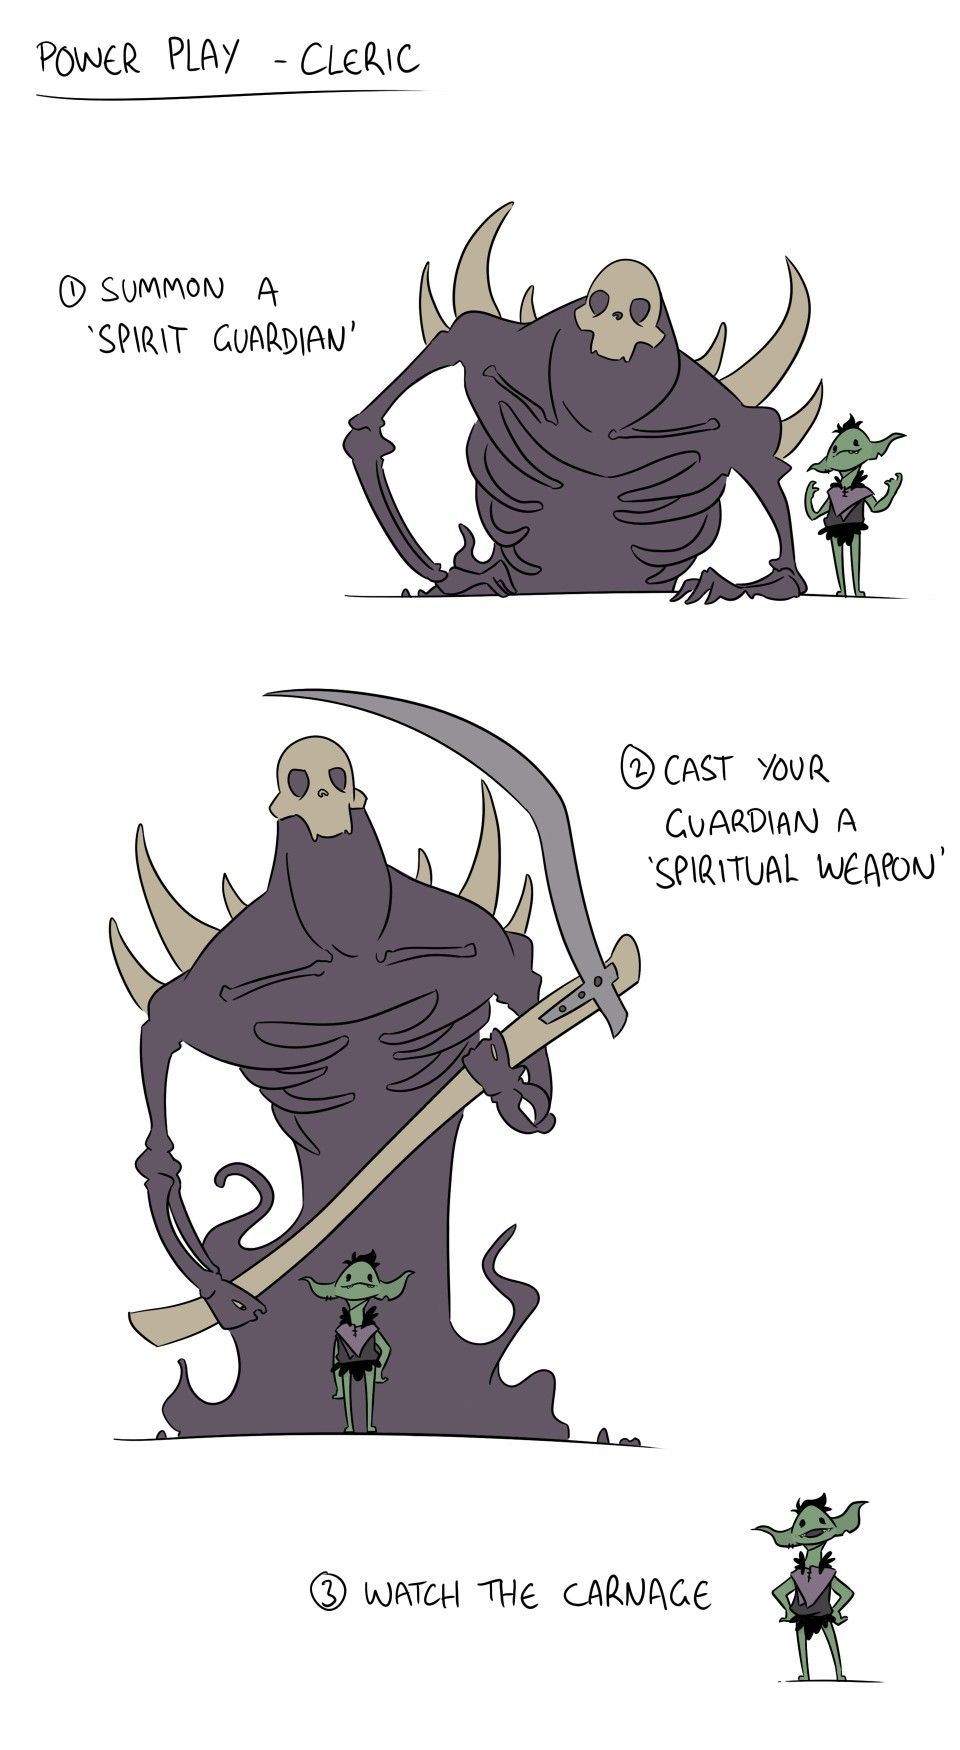 Pin By Stirkexd On A Giggle At Best D D Dungeons And Dragons Dnd Funny Dungeons And Dragons Memes